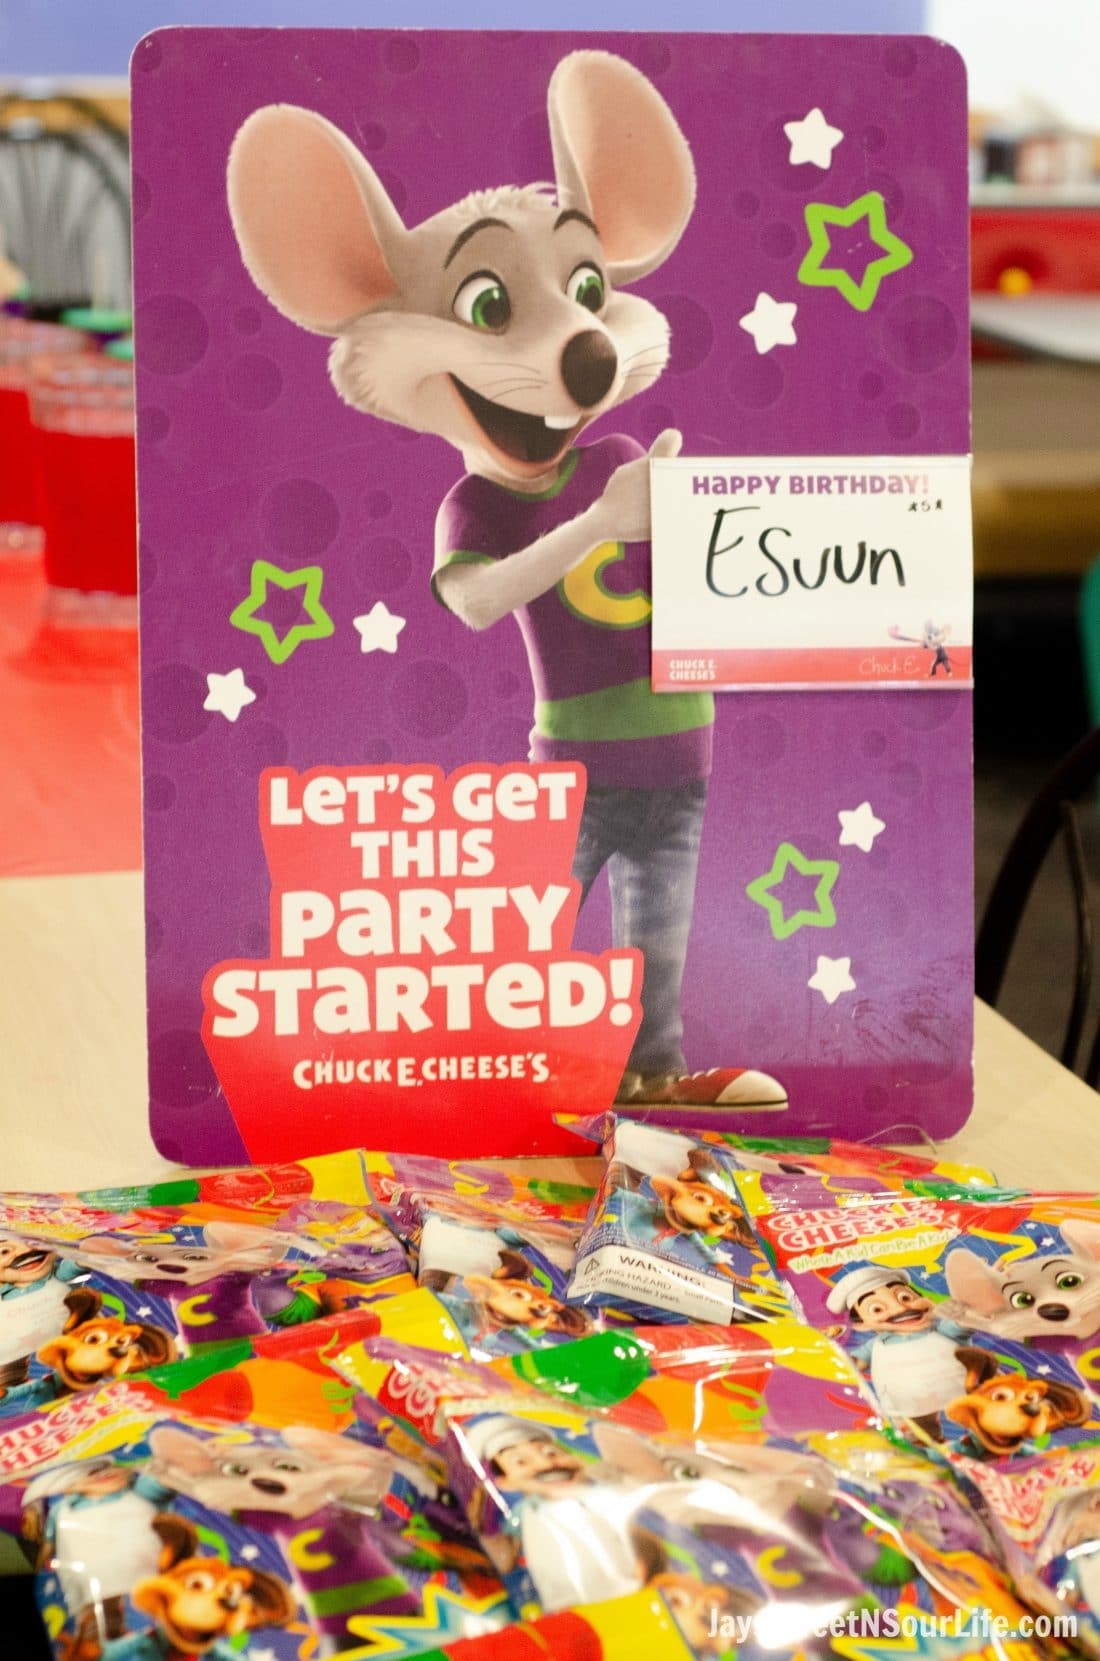 Chuck e cheeses VIP birthday Party Sign with Goodie Bags. Book your party today and have guests enjoy 2 hours of unlimited game play.